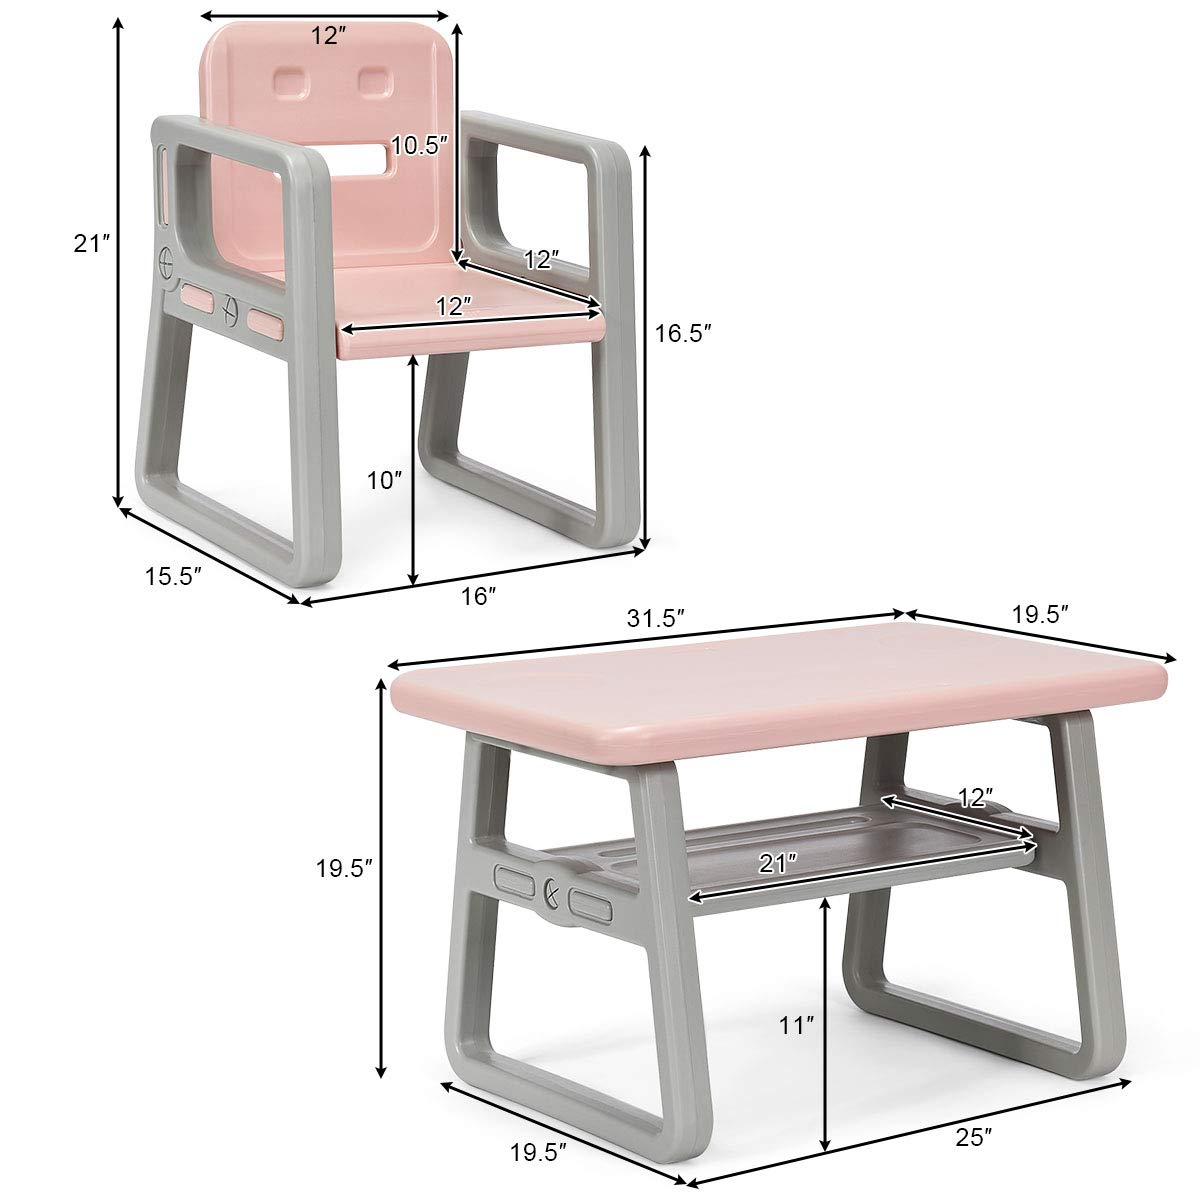 Costzon 3 Piece Kids Table and 2 Chairs Set, Learning Activity Play Table, Baby Dining Table, Children Desk Chair for 1-3 Years, Kids Furniture Set (Pink) by Costzon (Image #7)